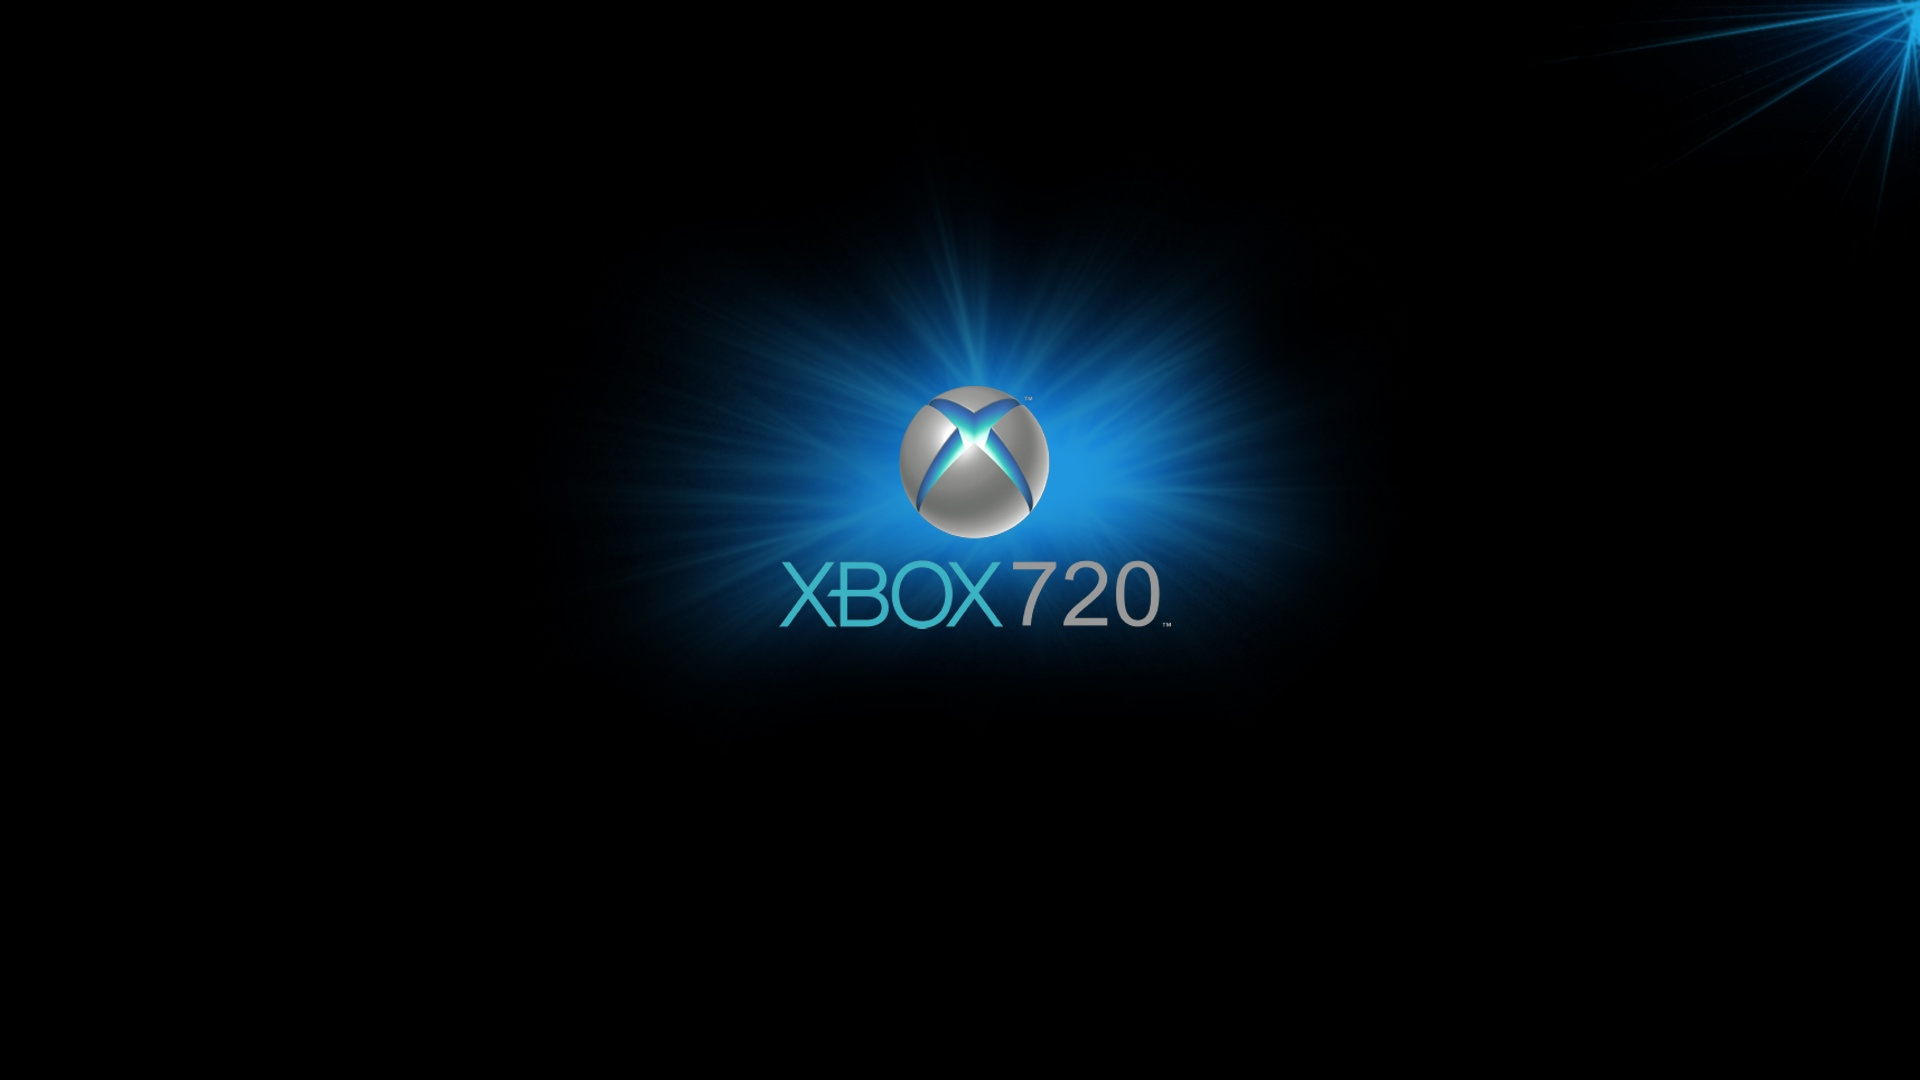 Mozilla Firefox Wallpaper 3d Xbox 720 New Generation High Definition Wallpapers Hd